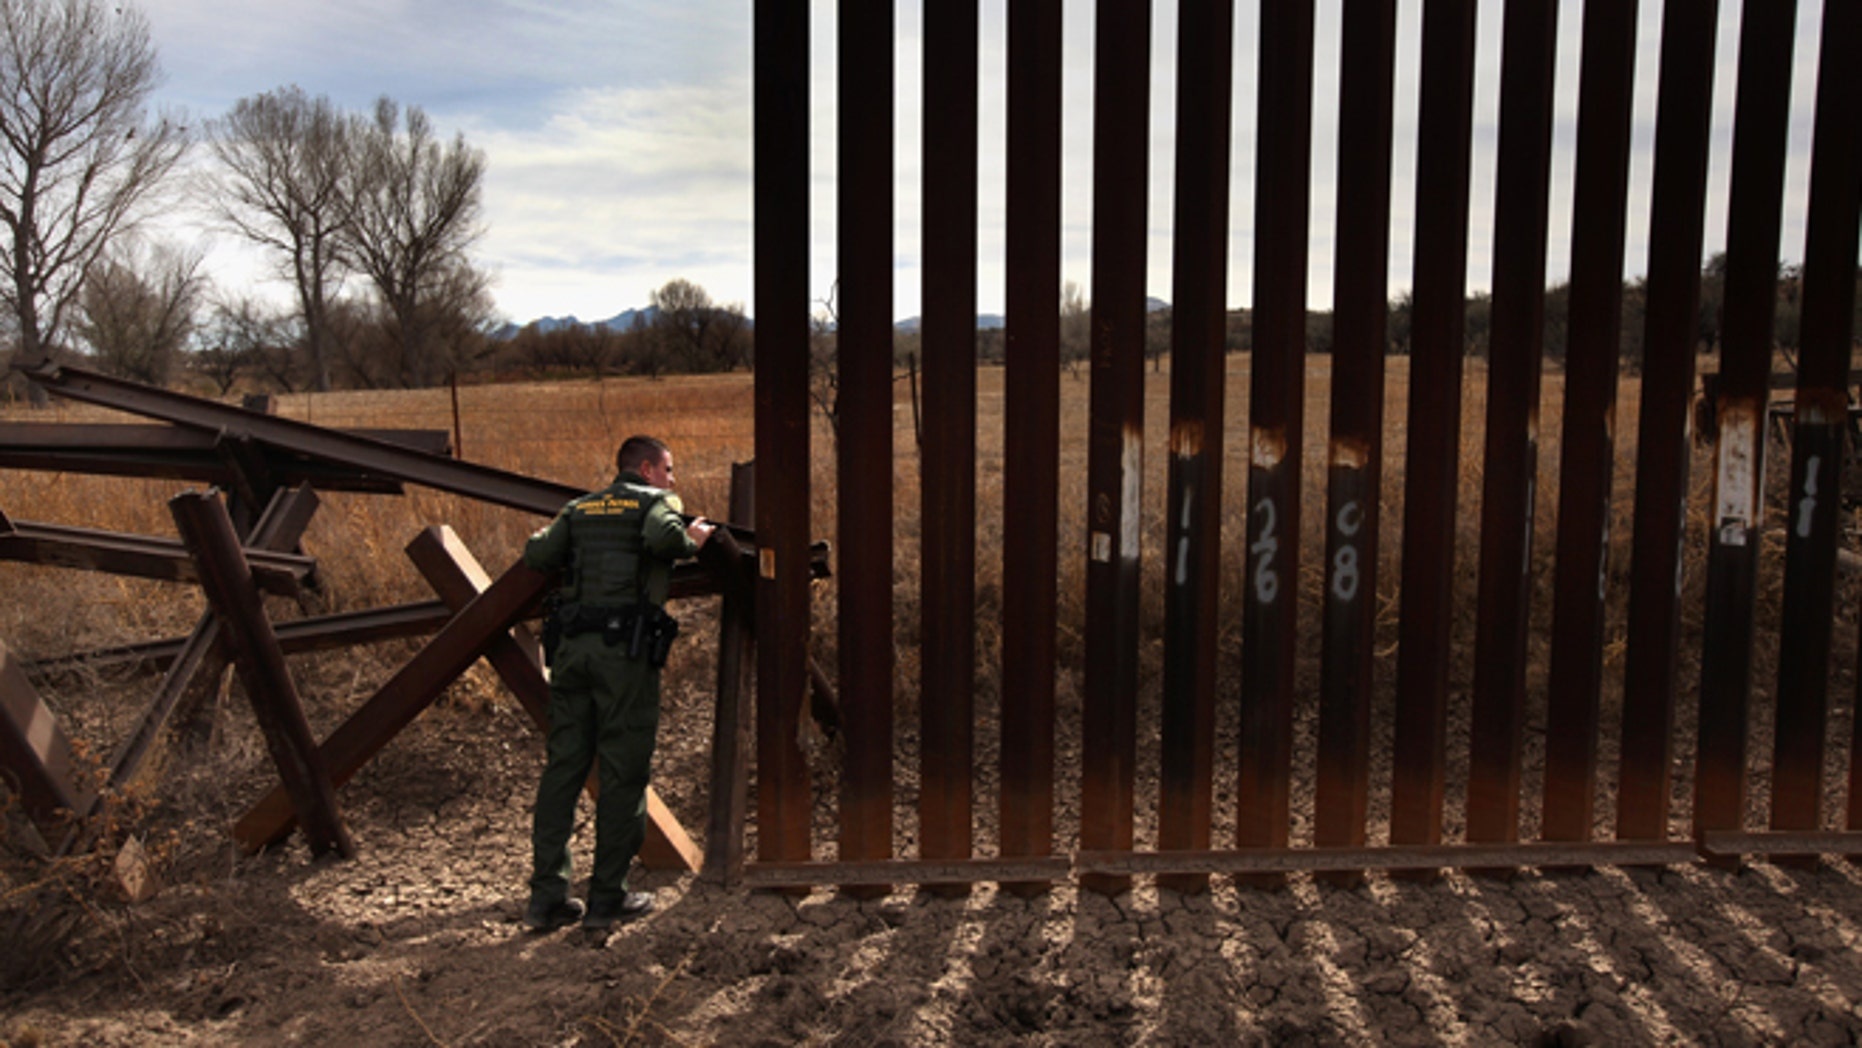 U.S. Border Patrol agent Richard Funke inspects the juction of the new and old border fence at the U.S.- Mexico border on December 7, 2010 near Nogales, Arizona. (Photo by John Moore/Getty Images)